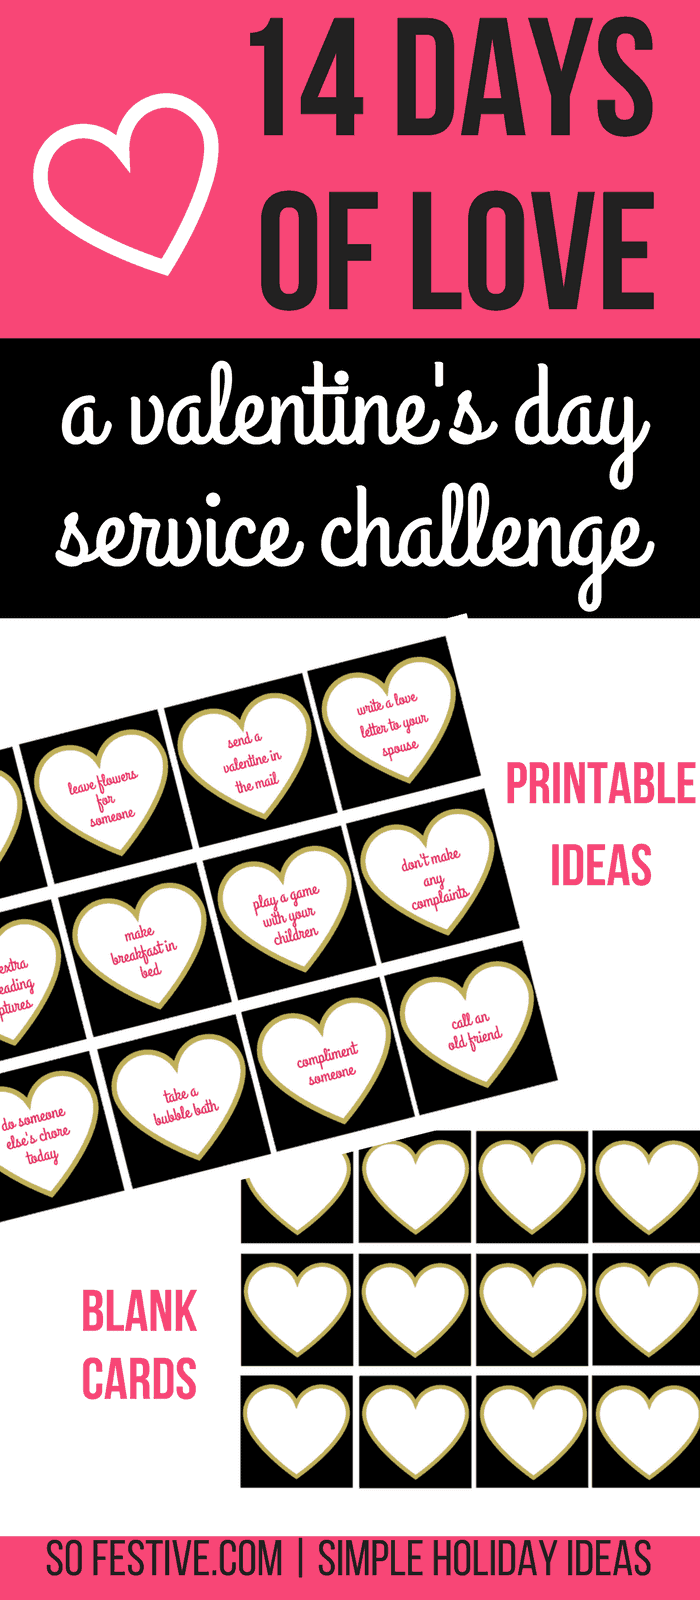 14 Days of Love- Valentines Day Service Challenge